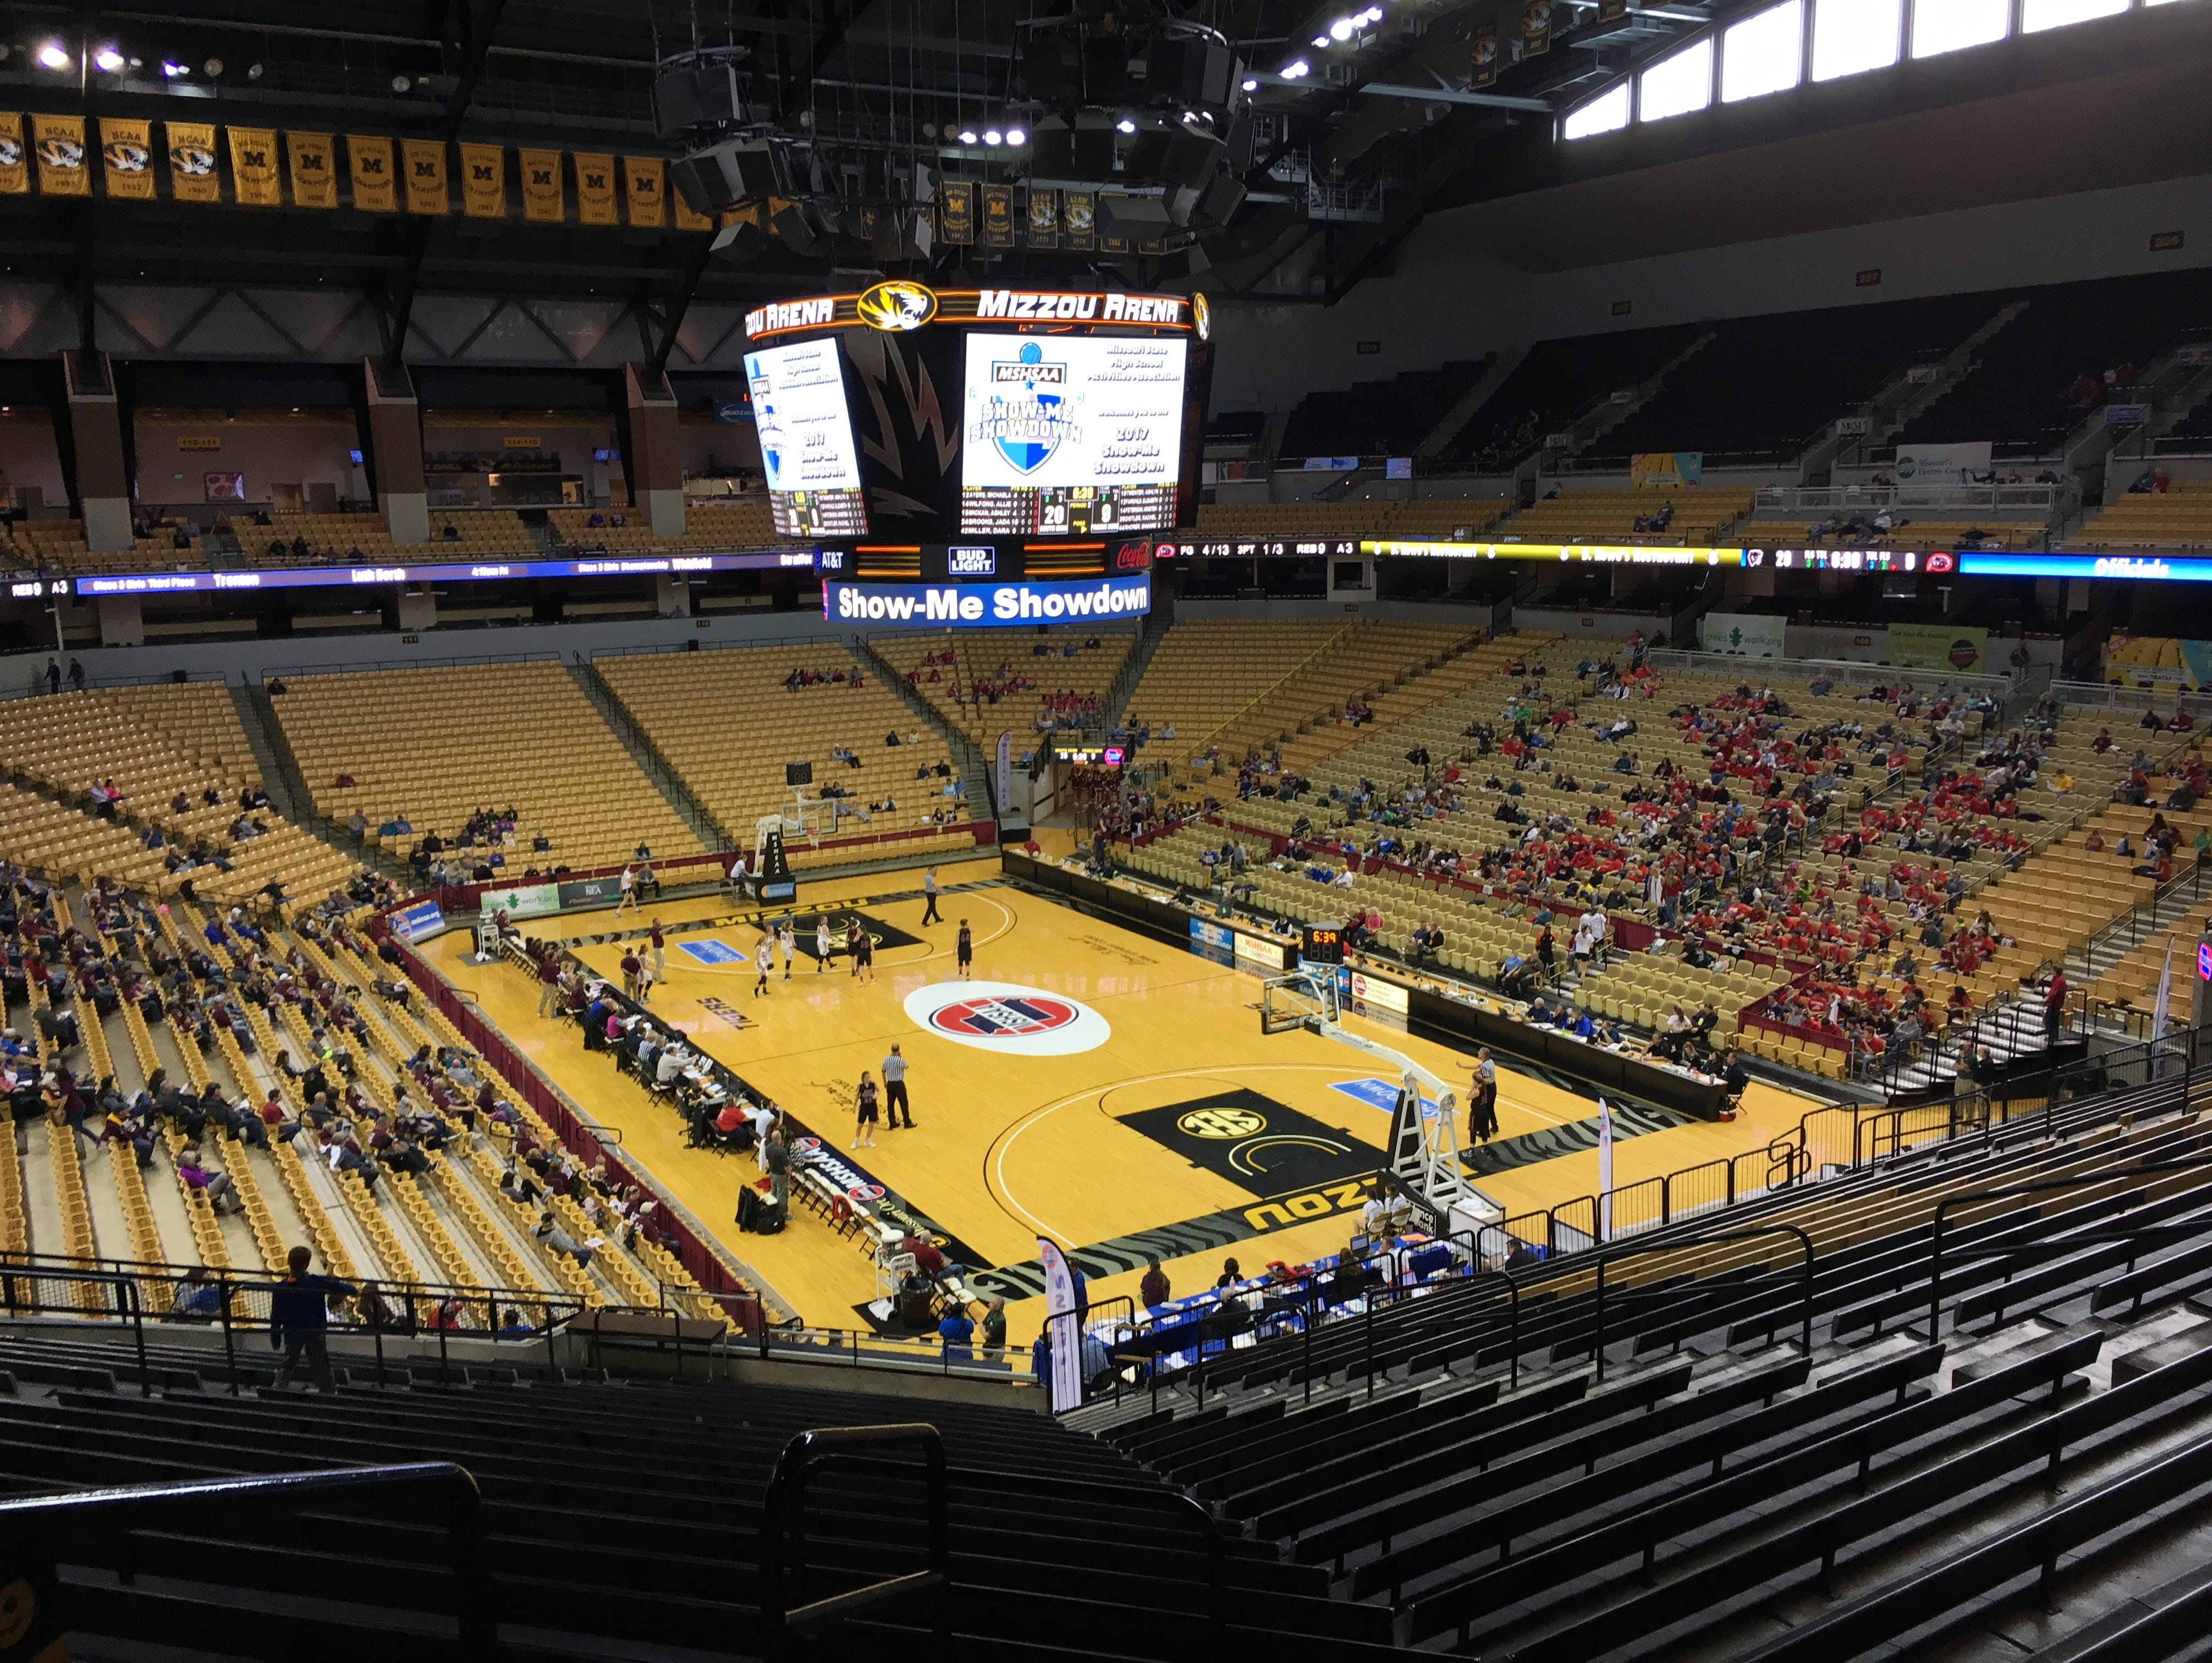 Mizzou Arena hosts the 2017 Missouri high school basketball state championship finals on Saturday, March 11.